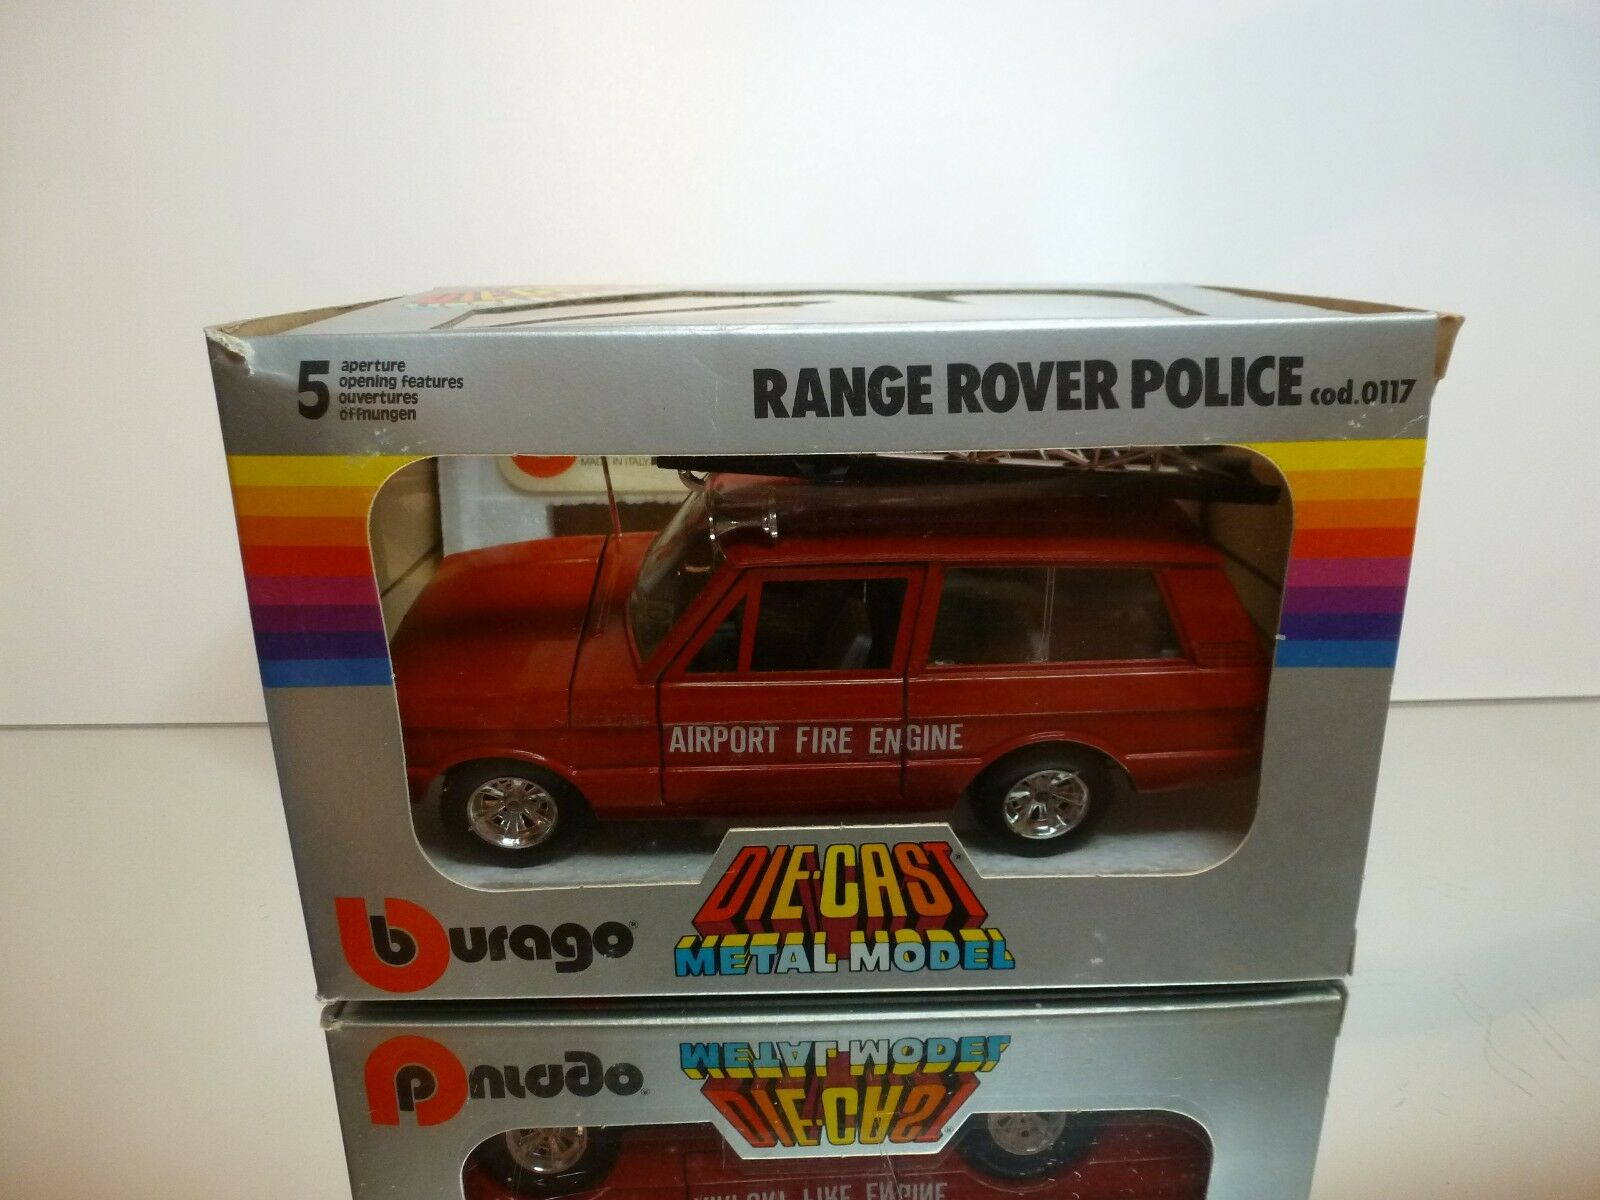 BBURAGO 0125 RANGE ROVER AIRPORT FIRE ENGINE - rojo 1 24 - GOOD CONDITION IN BOX